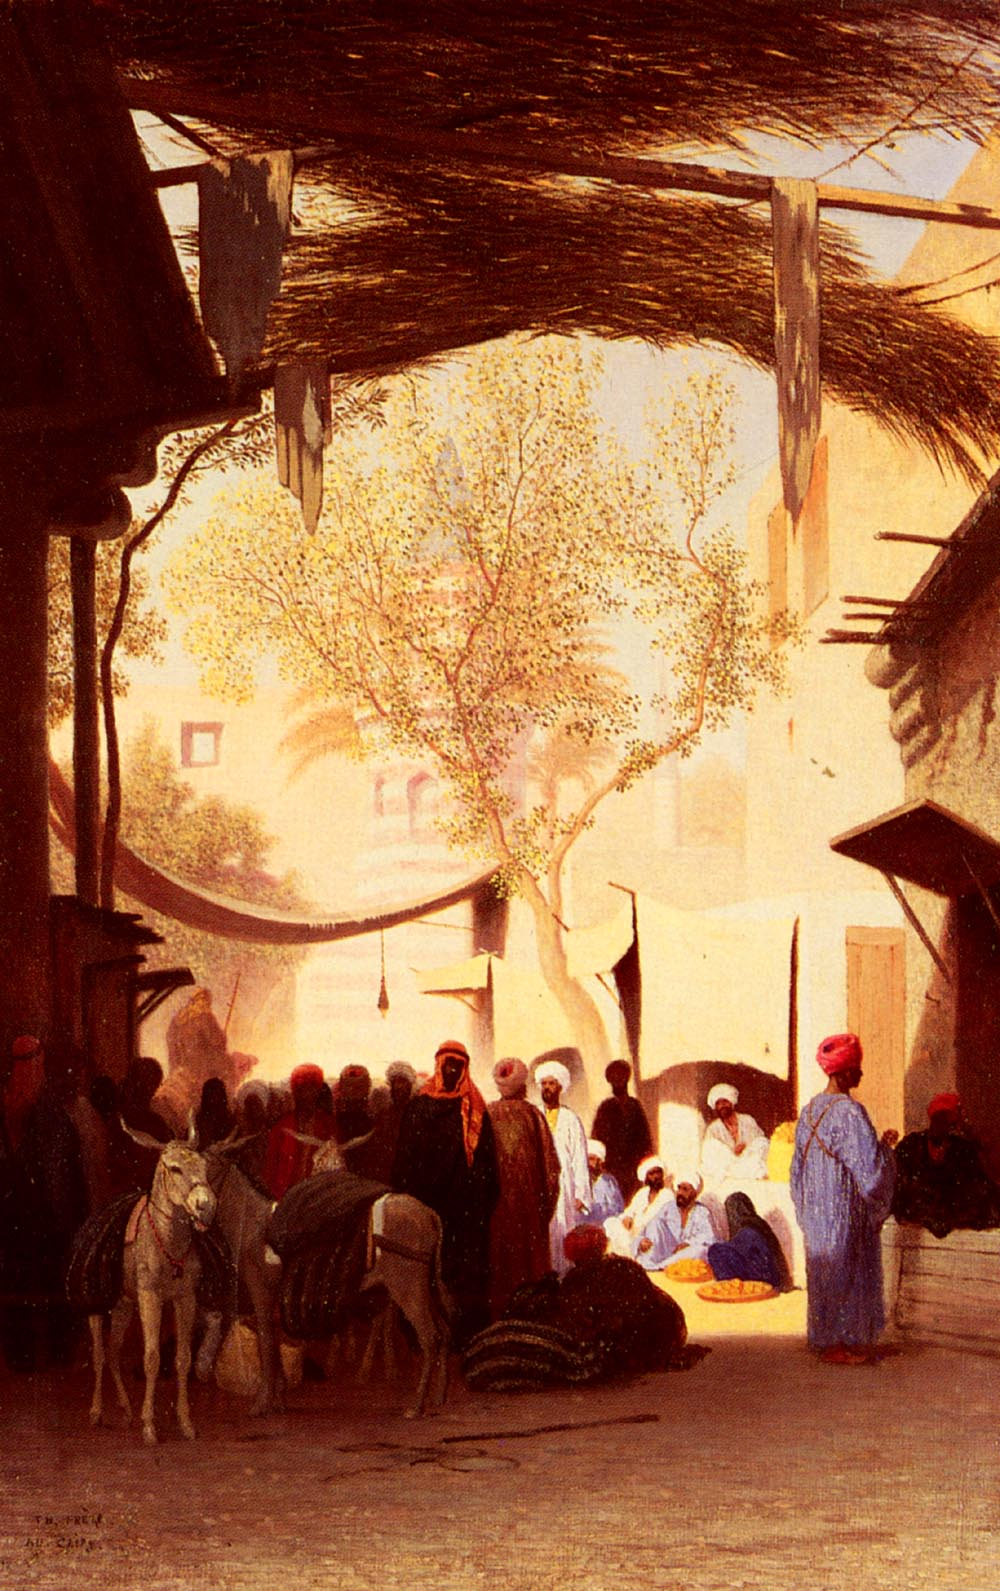 4 frere  a_market_place,_cairo-large.jpg